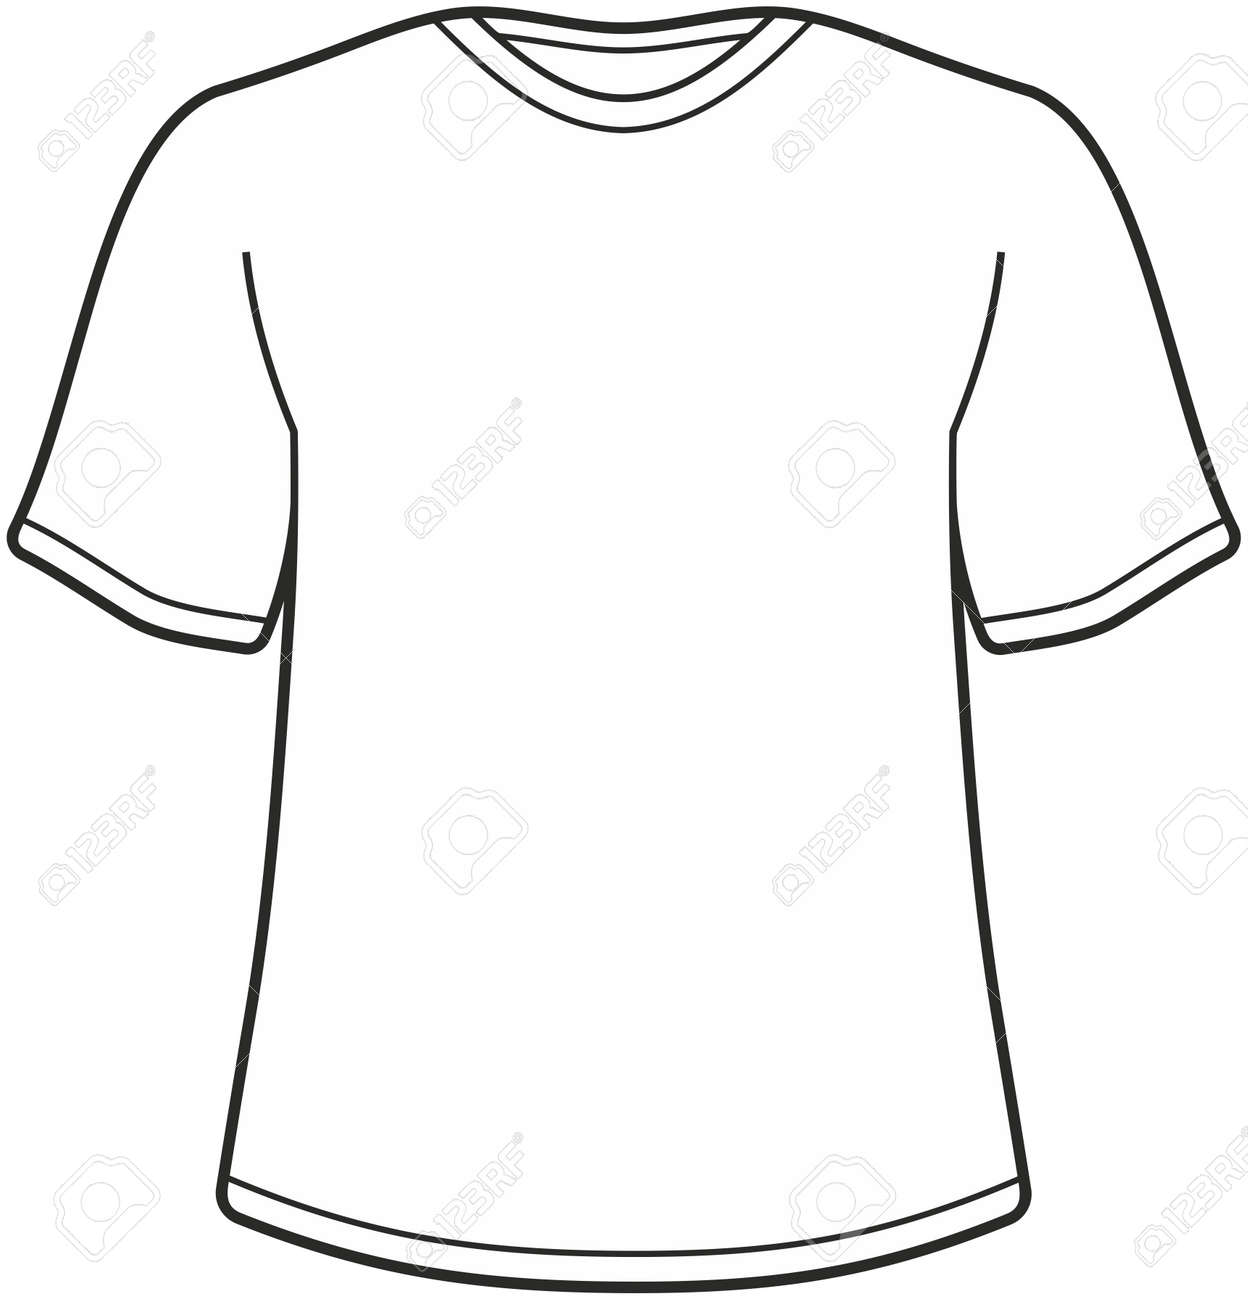 Blank T-shirt Tee Template Vector Isolated Royalty Free Cliparts ...